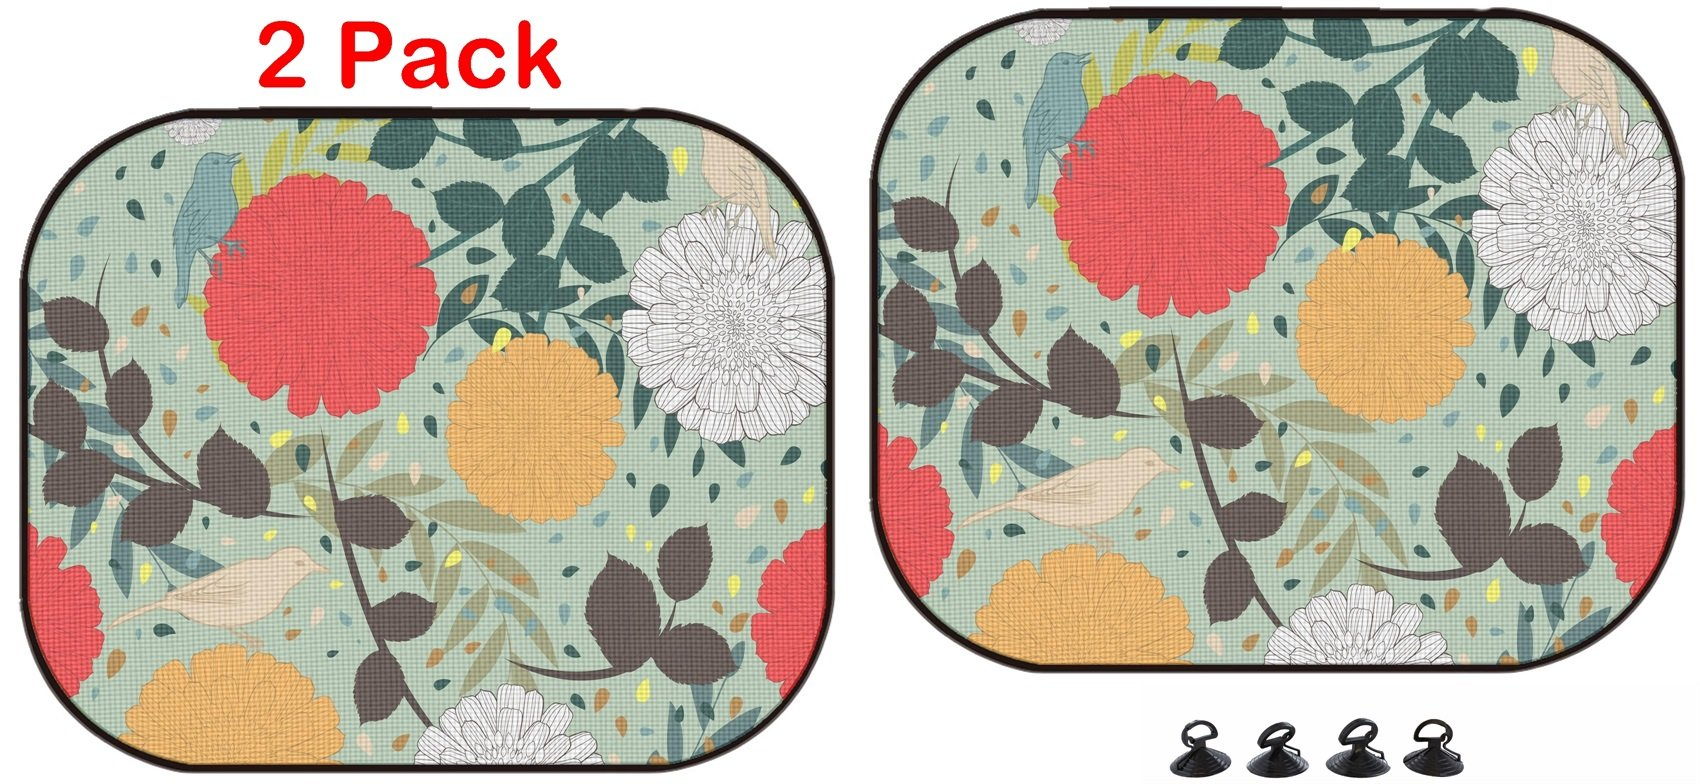 Luxlady Car Sun Shade Protector Block Damaging UV Rays Sunlight Heat for All Vehicles, 2 Pack ID: 43154050 Colorful Seamless Floral Ornate Pattern by Luxlady